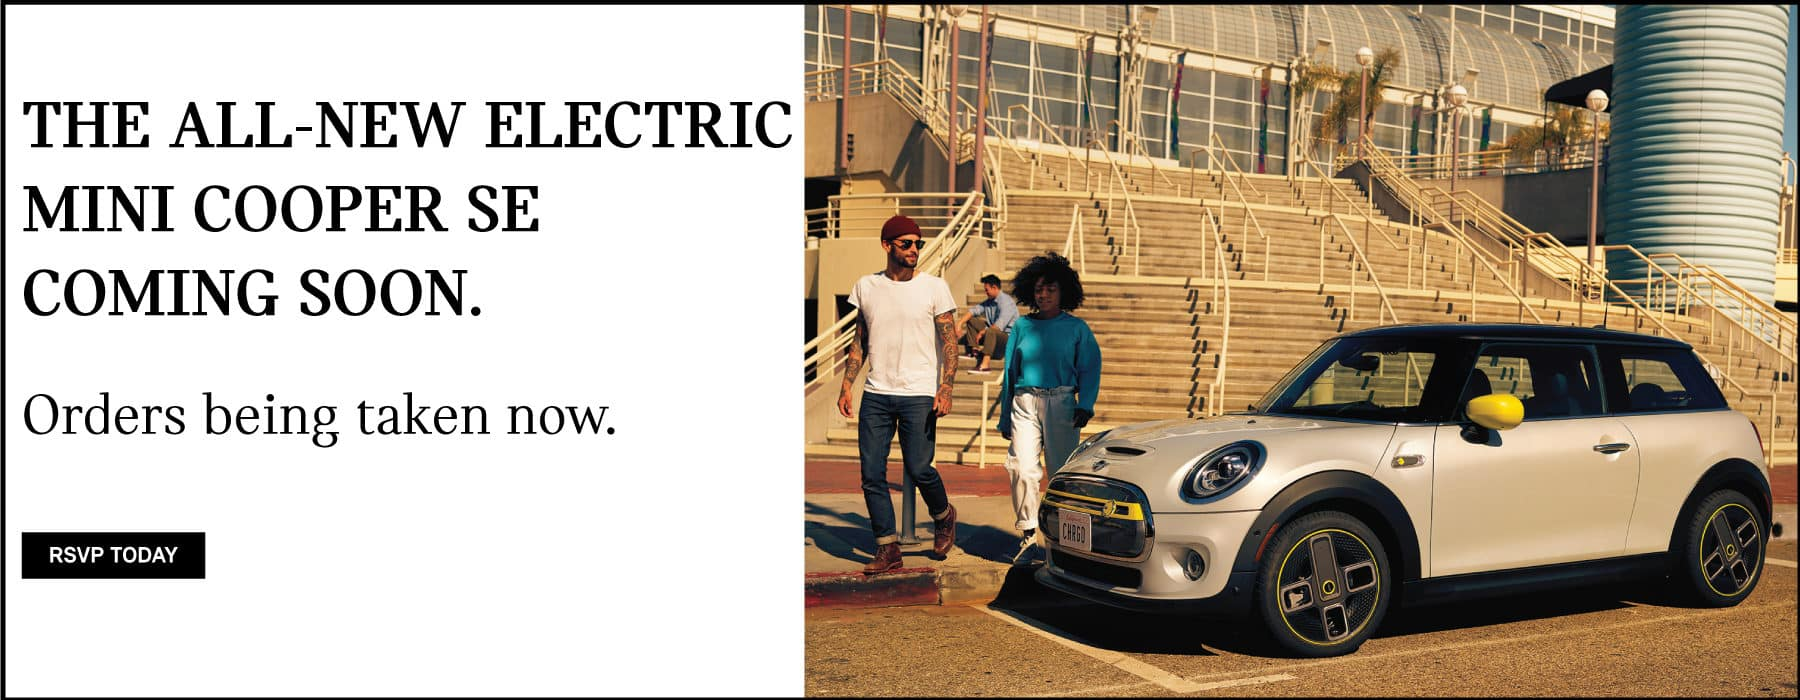 THE ALL NEW ELECTRIC MINI COOPER SE COMING SOON. Orders being taken now. Click to RSVP today.